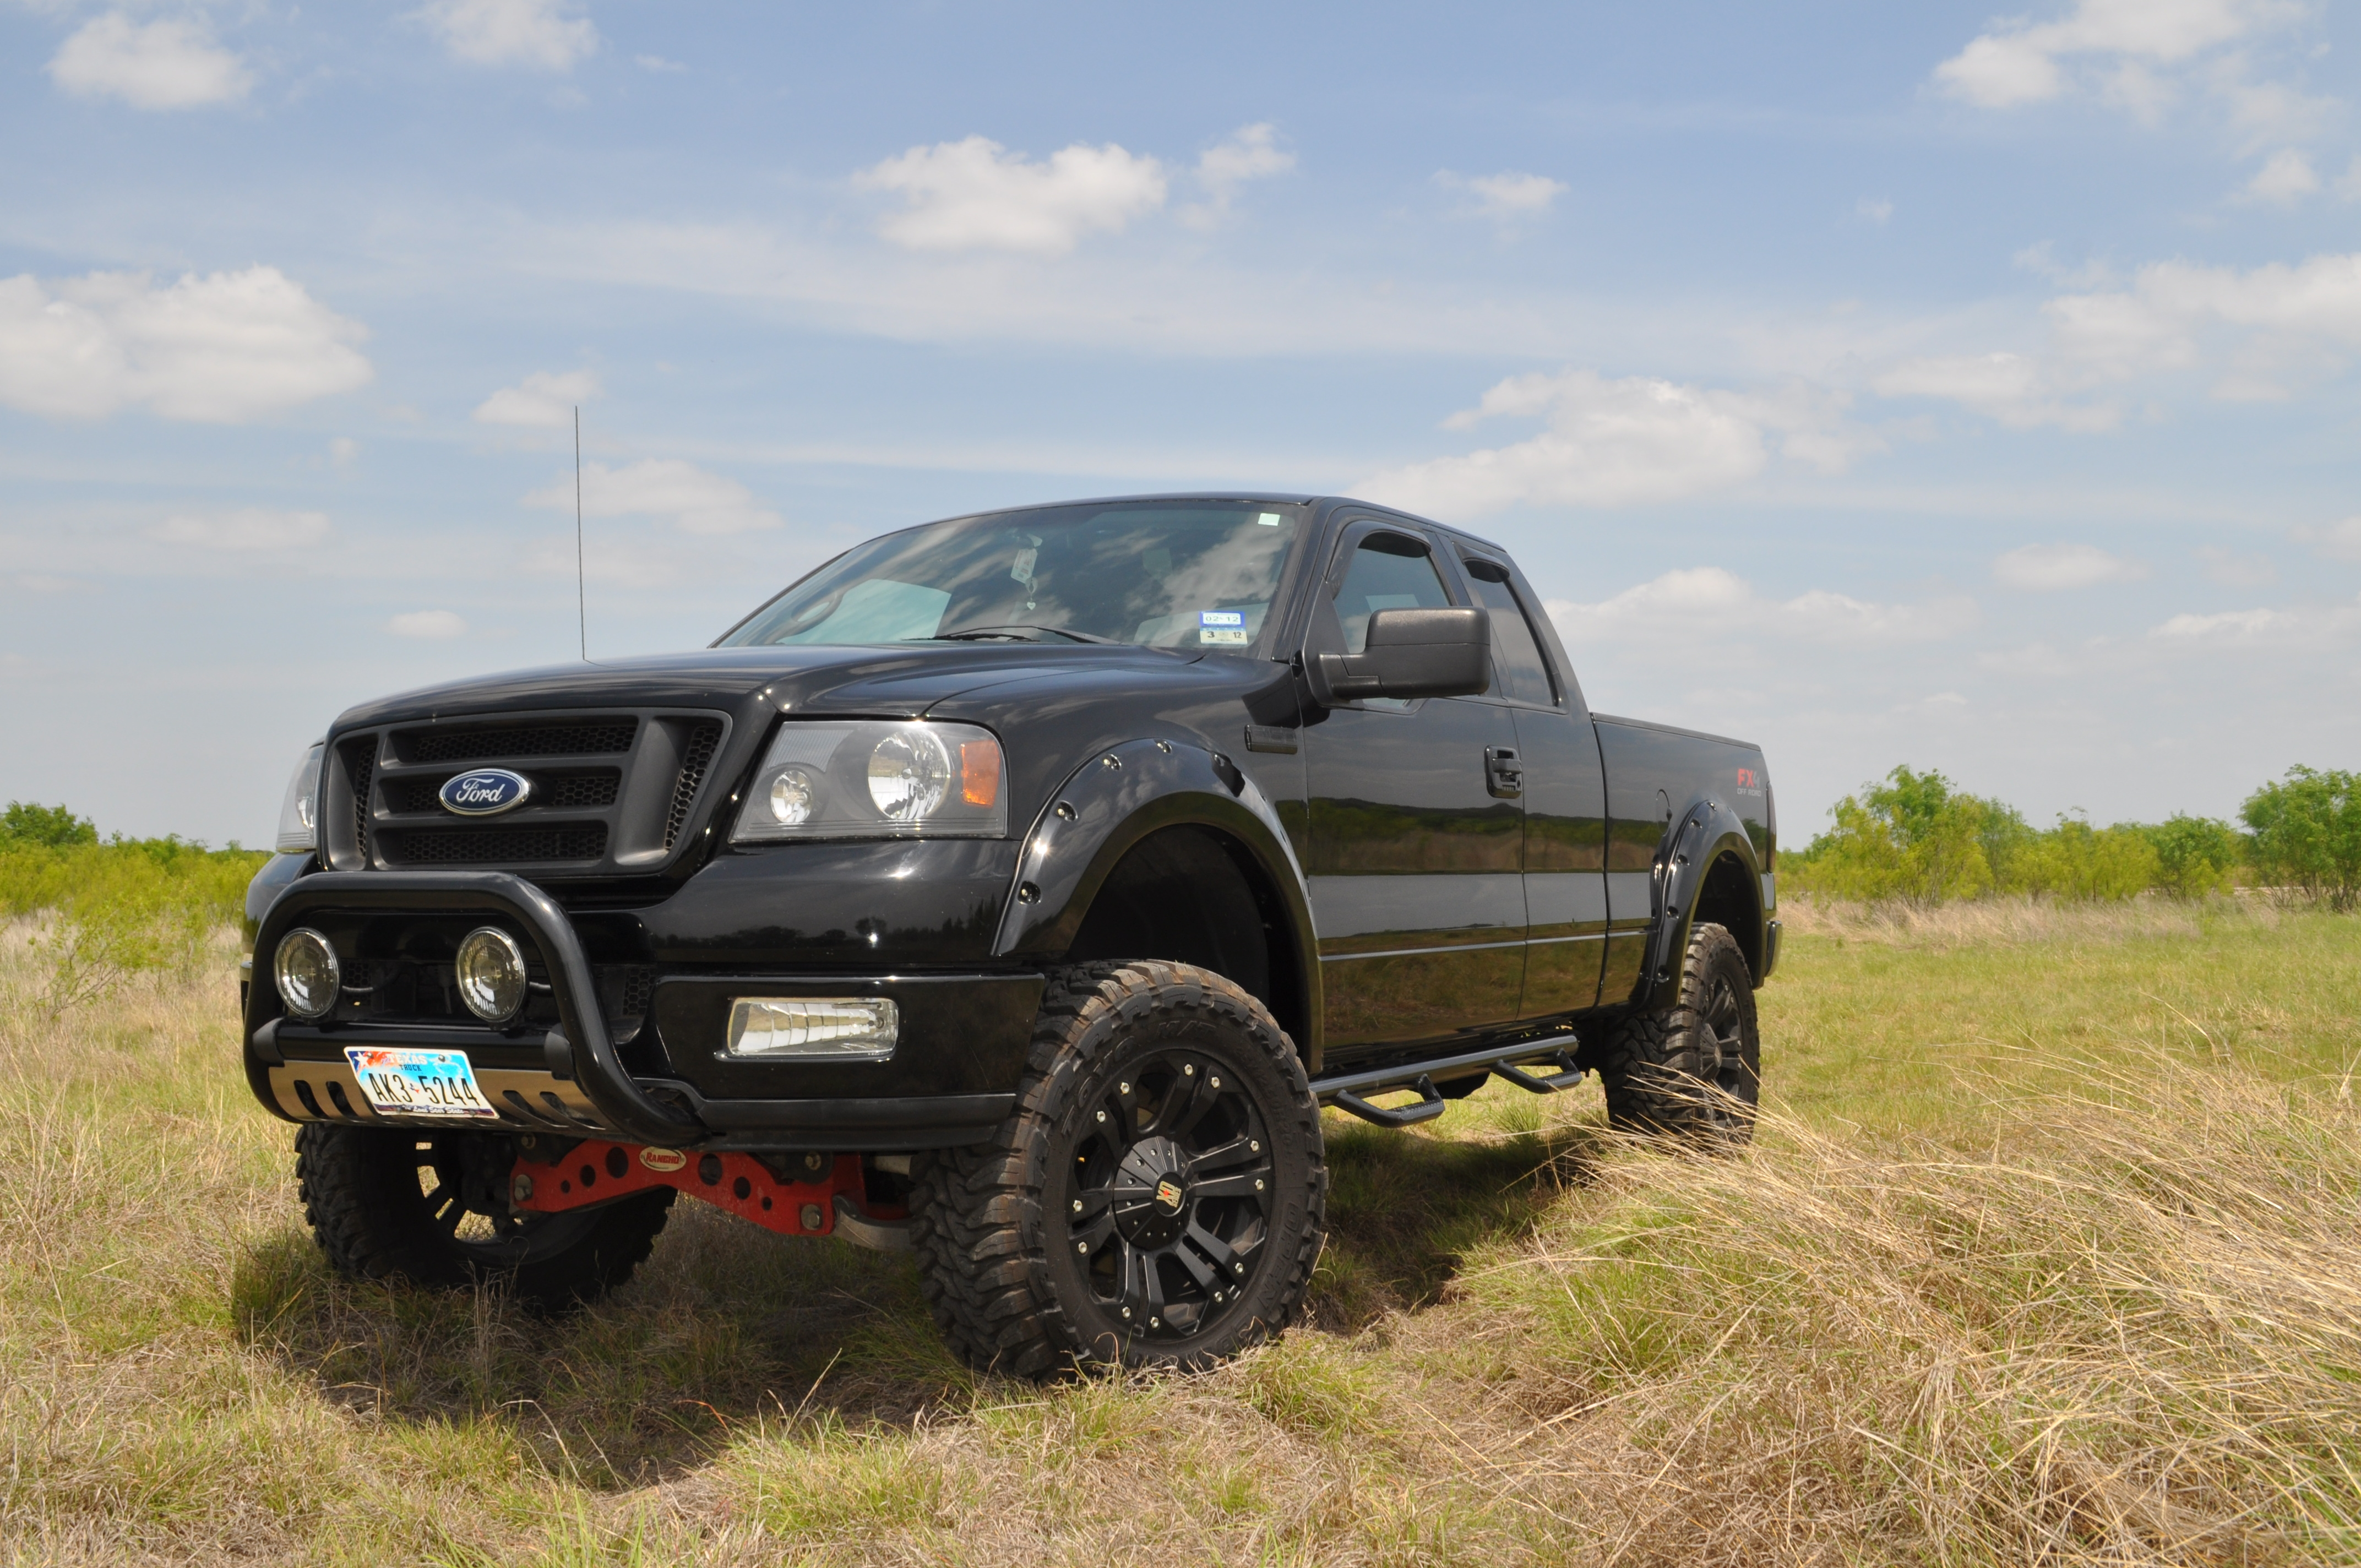 Ford F150 Lifted Blacked Out Elegant 2004 F 150 Xl Supercab Ffx Super Cab Original With